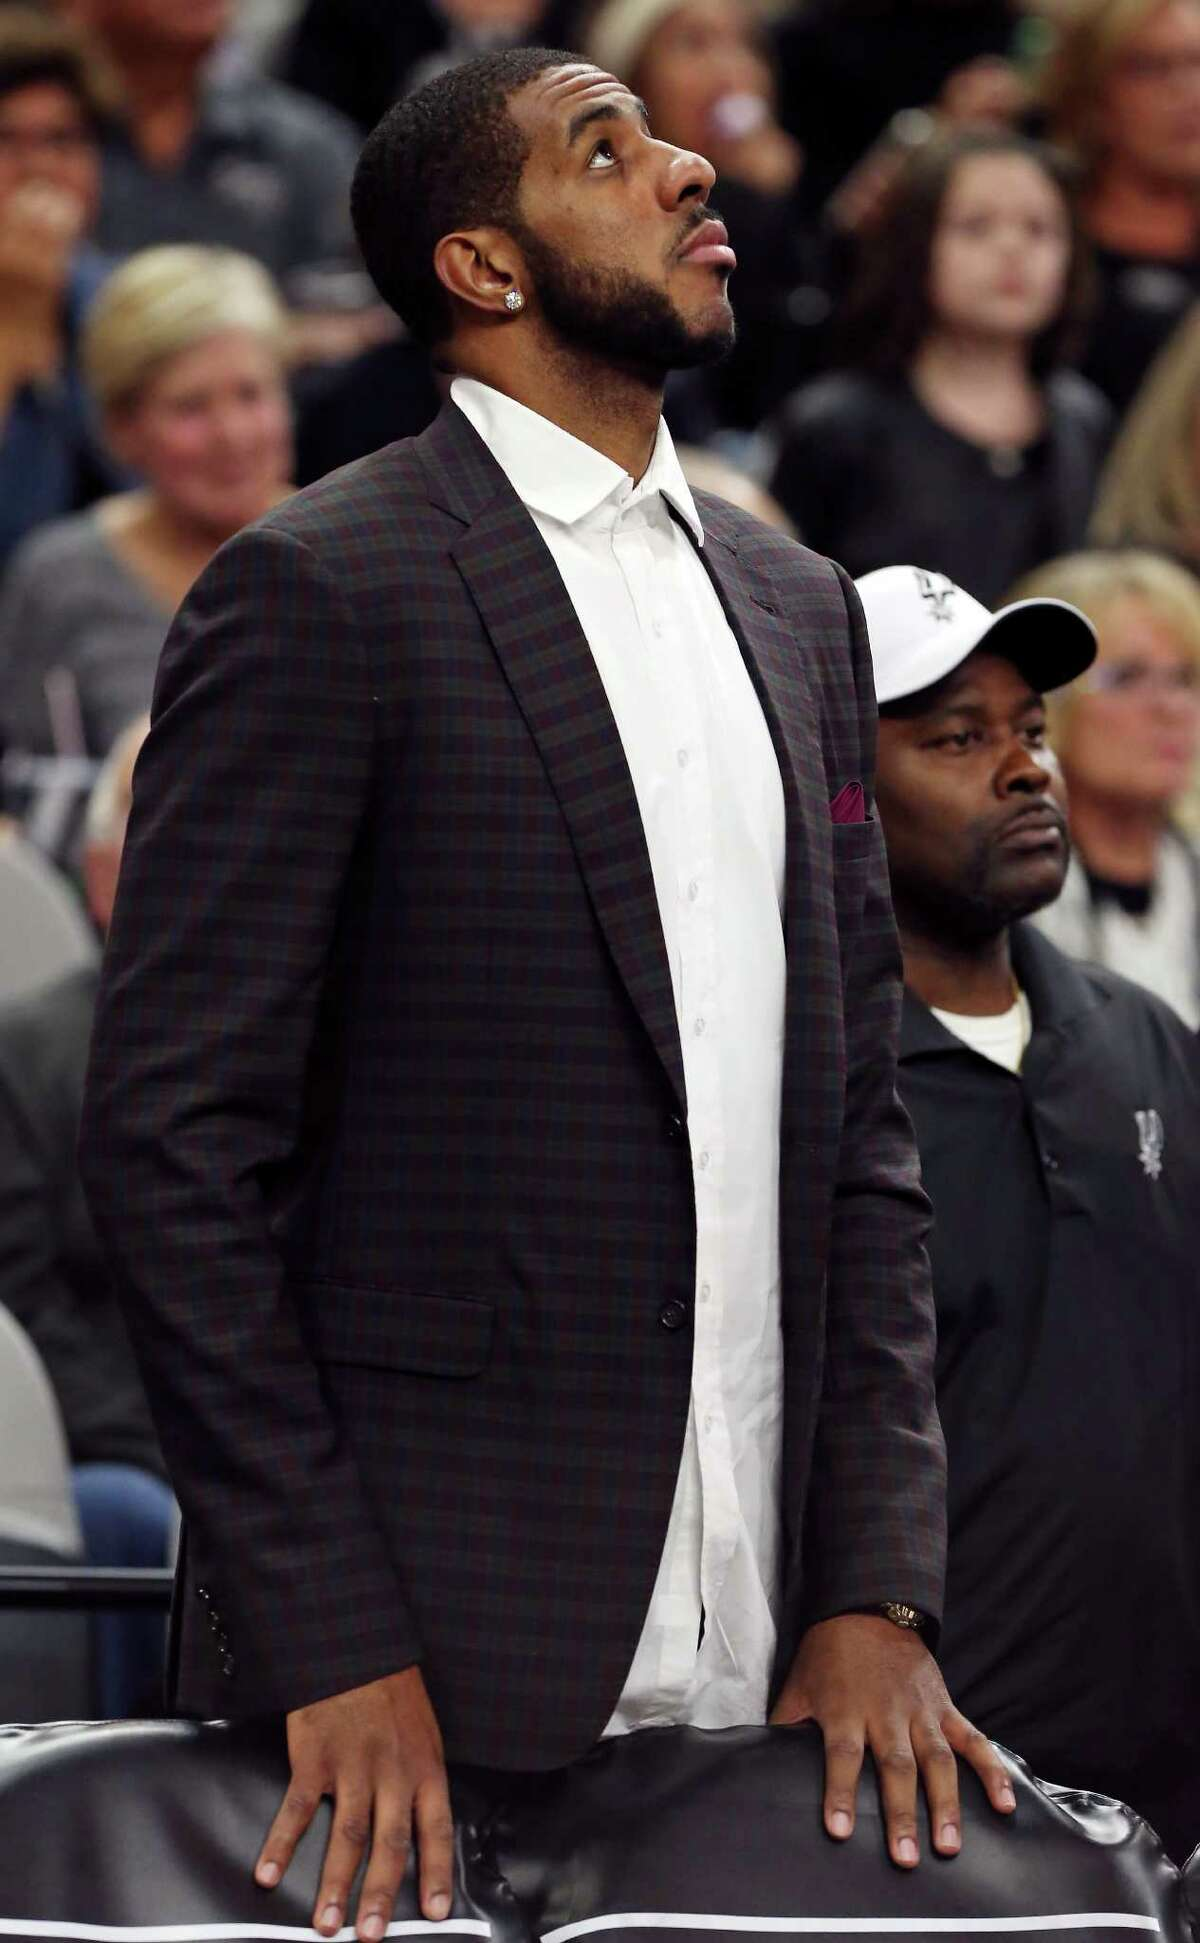 San Antonio Spurs' LaMarcus Aldridge stands during a timeout while on the bench during first half action against the Phoenix Suns Monday Nov. 23, 2015 at the AT&T Center.